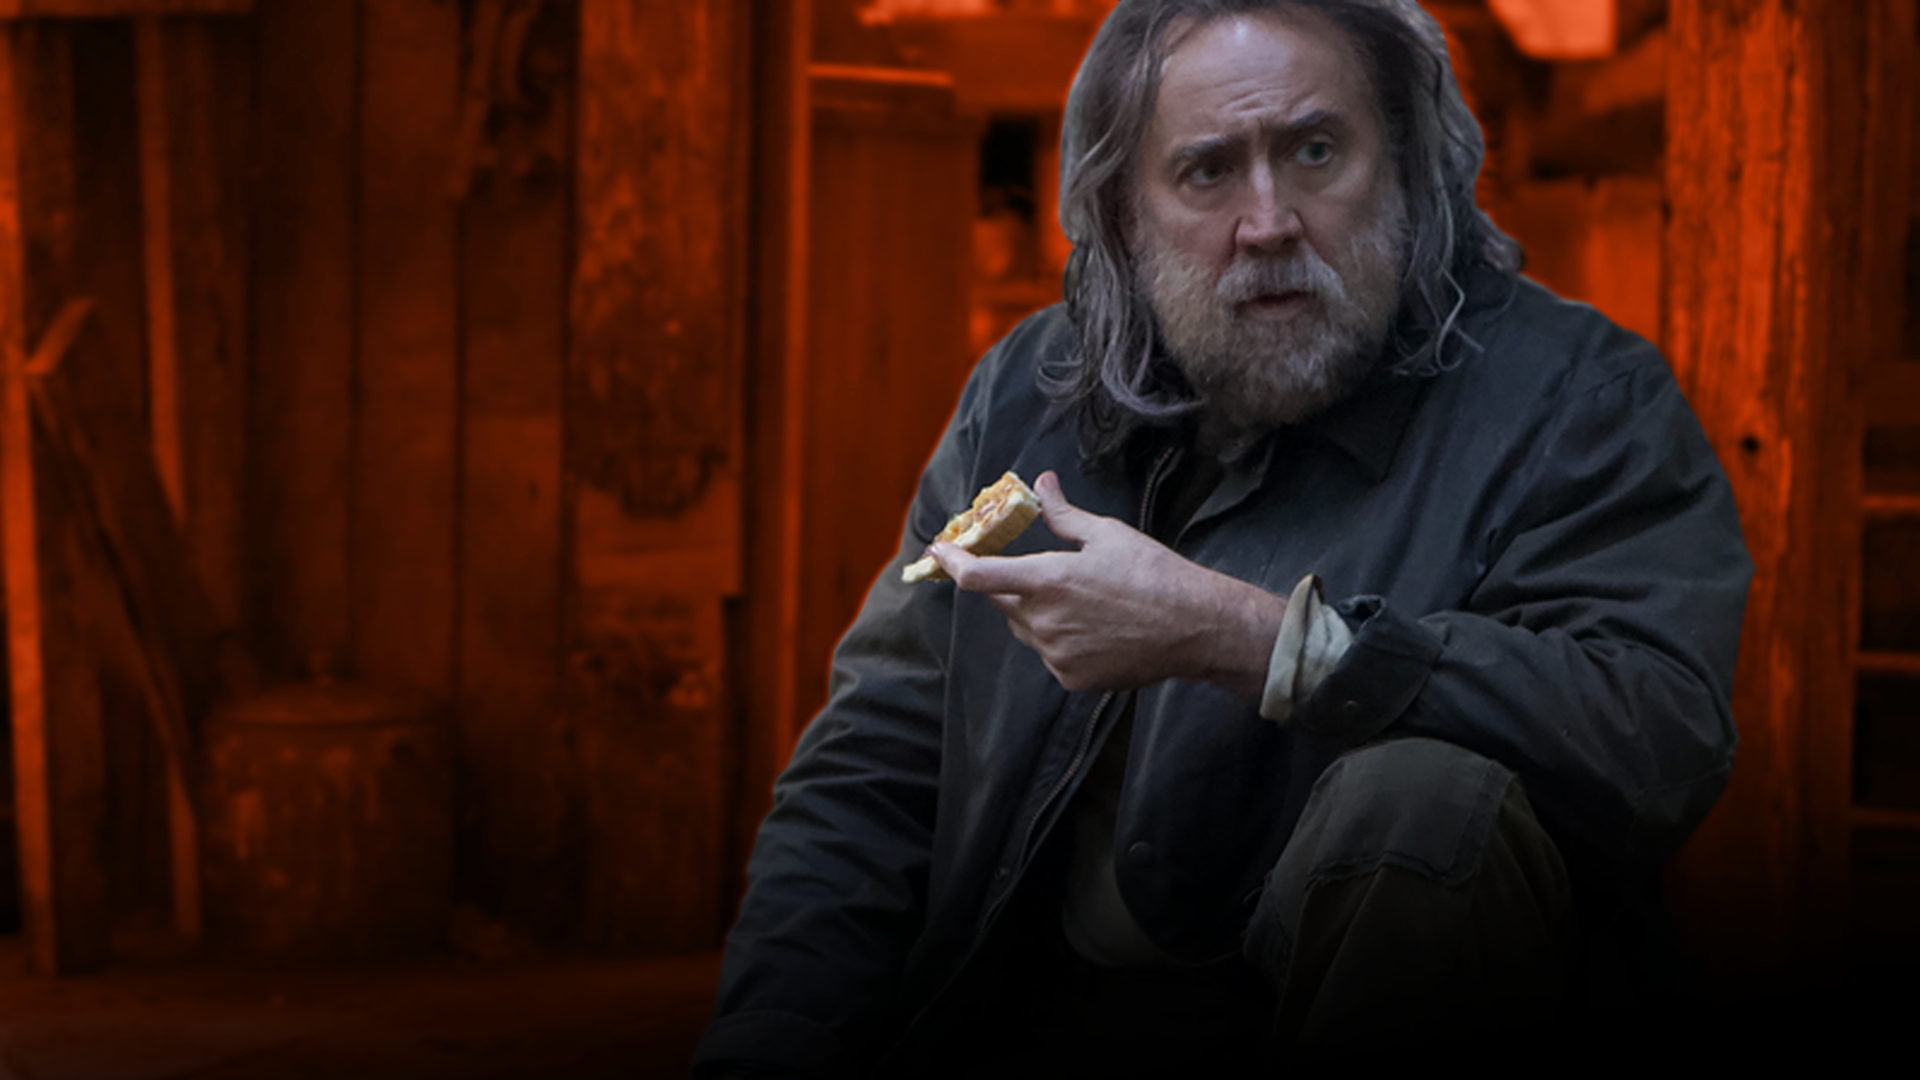 Nicolas Cage delivers one his best performances in Pig